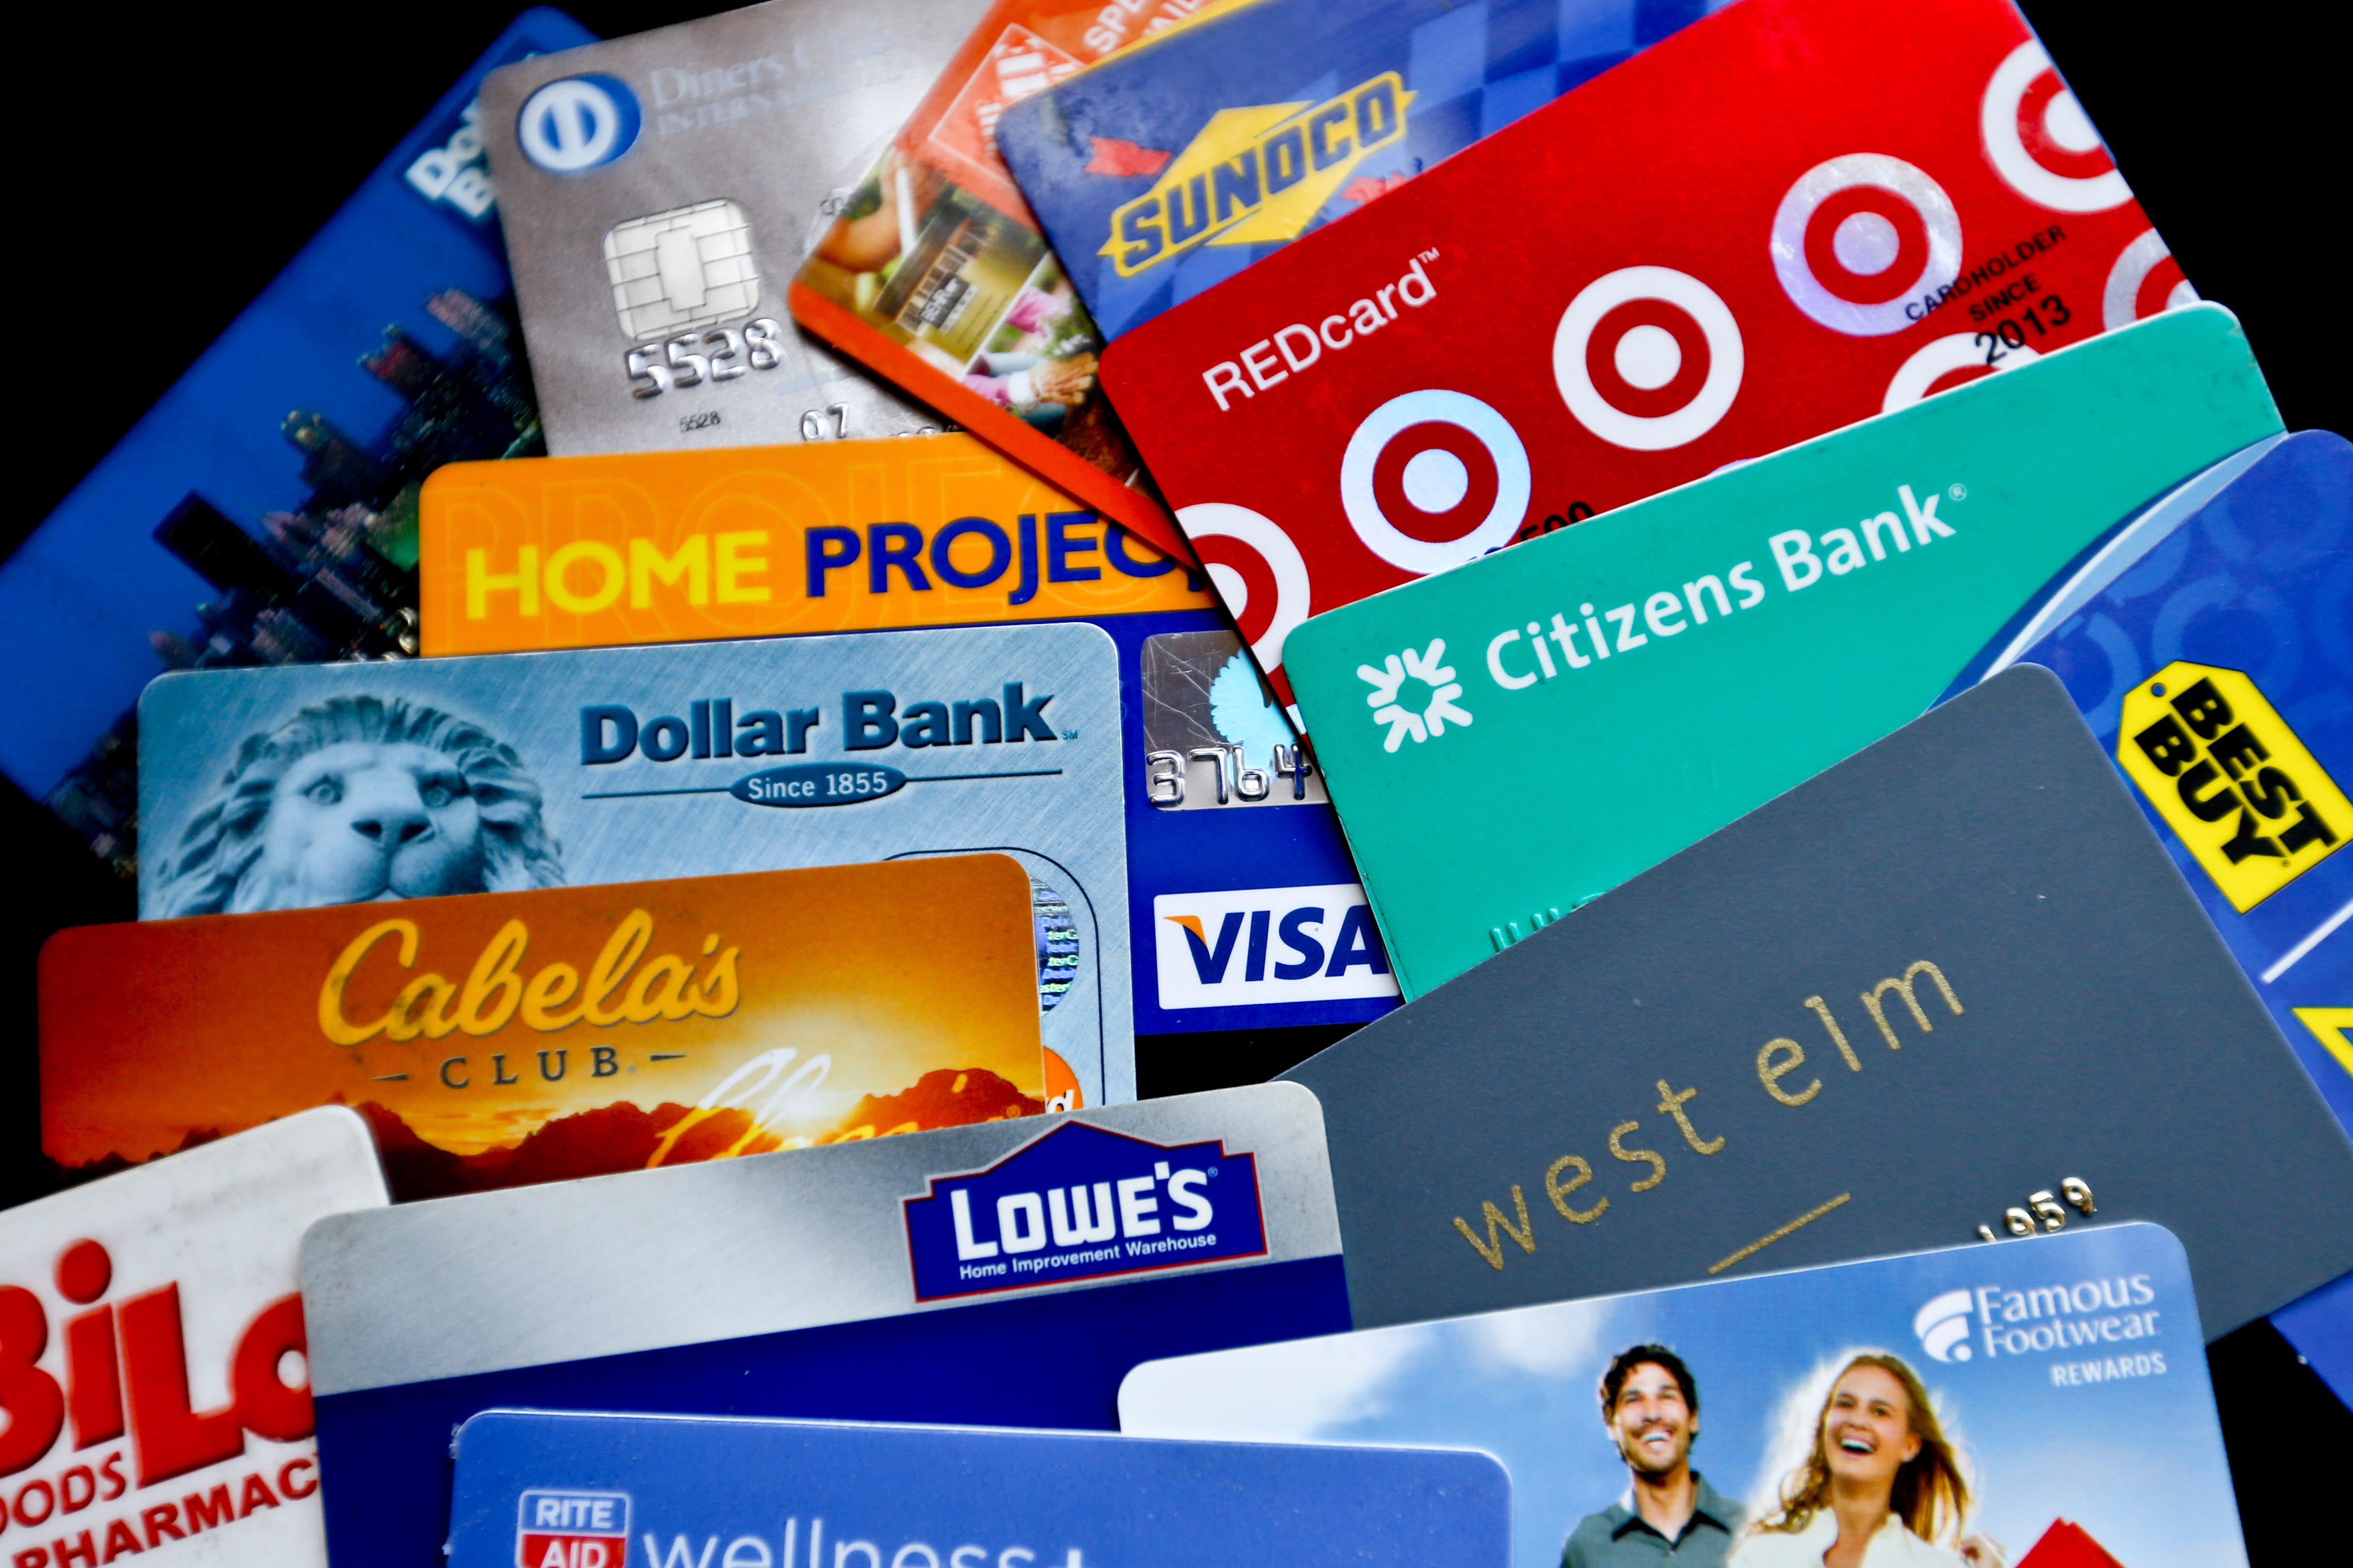 Federal Reserve cut could affect credit cards, loans